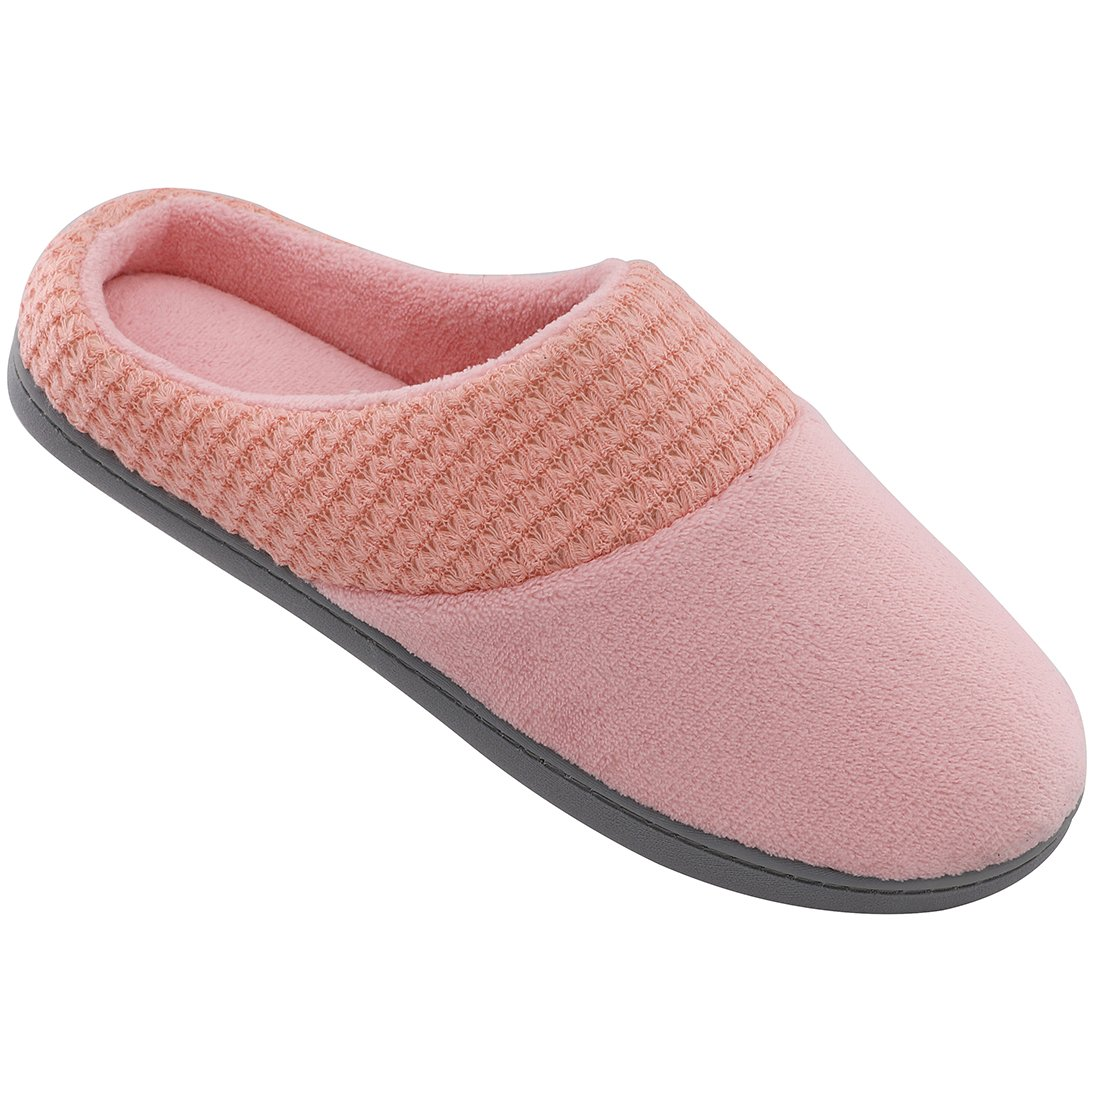 ULTRAIDEAS Women's Terry Plush Memory Foam Slippers Anti-Slip Indoor/Outdoor House Shoes w/Fabric Knit Collar